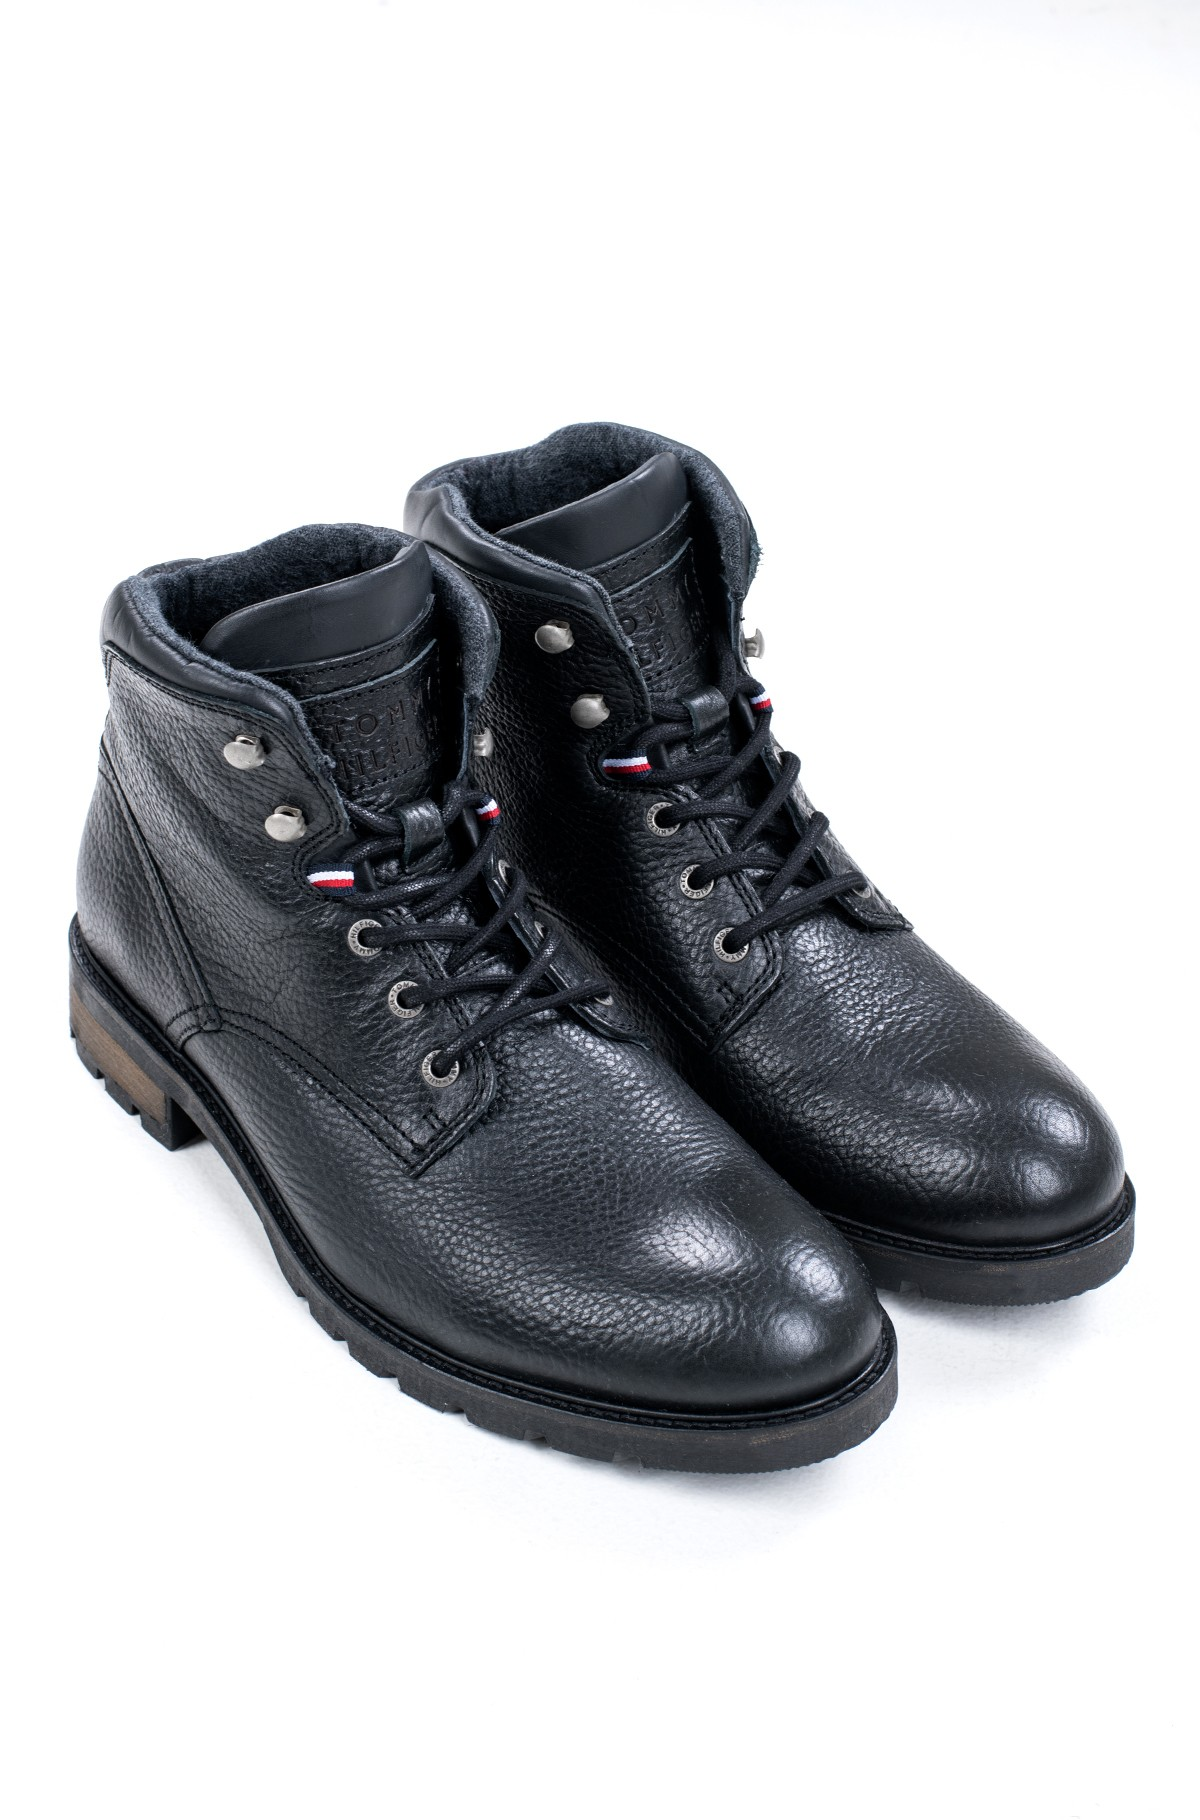 Saapad CLASSIC WARM TUMBLE LTH BOOT-full-1